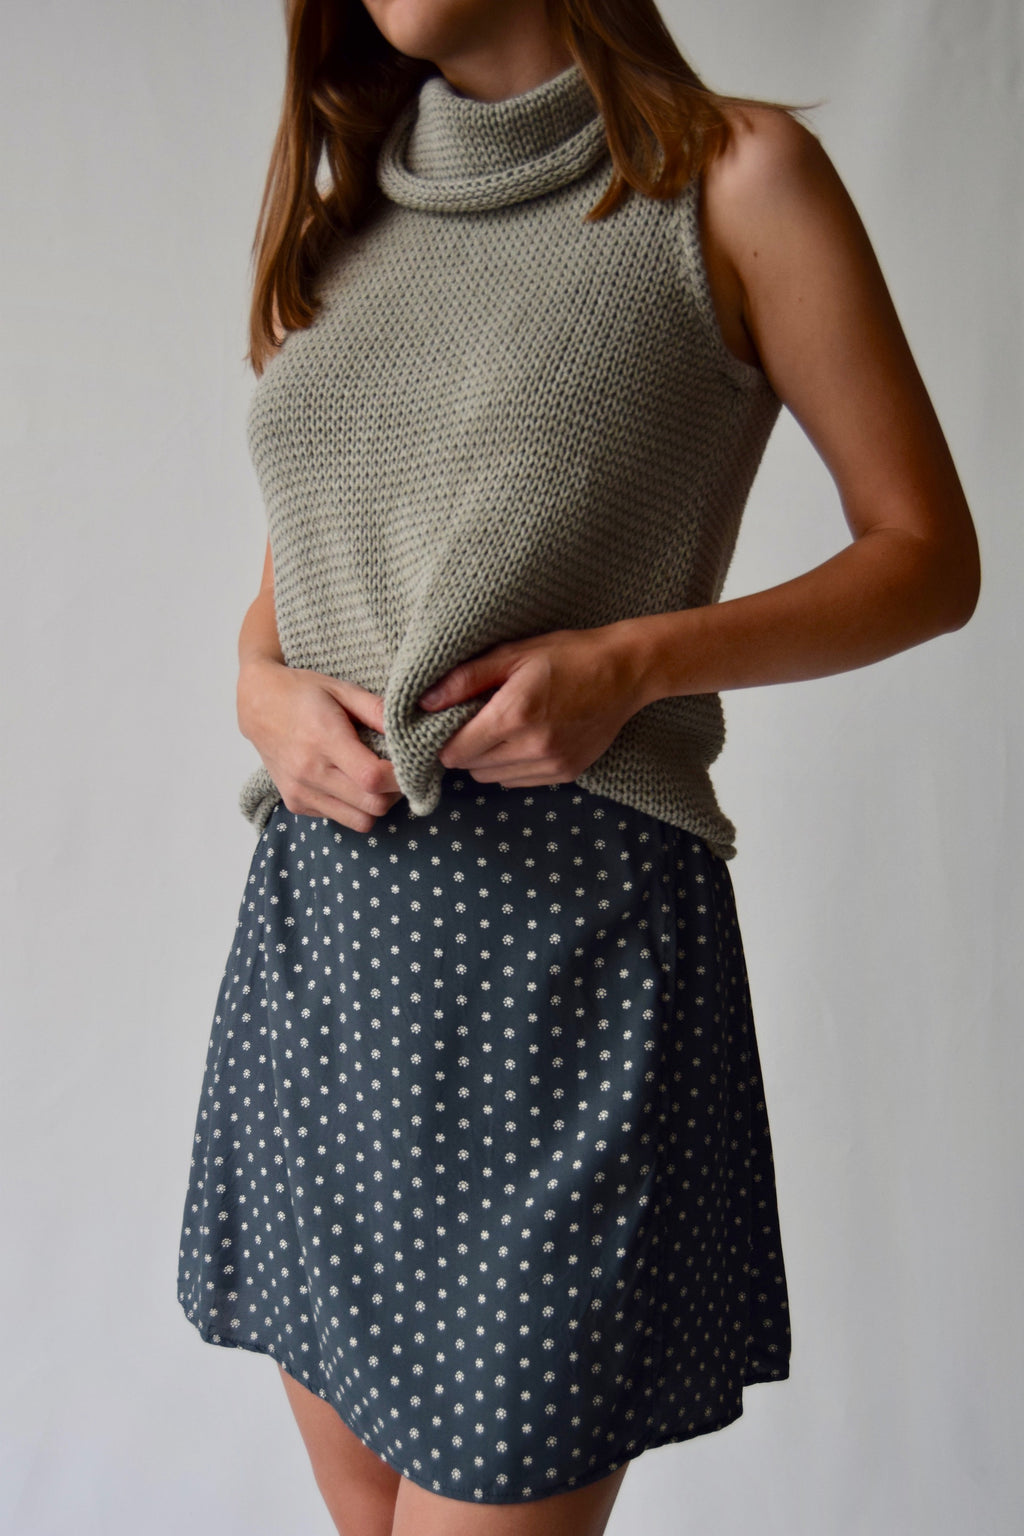 Vintage Spruce ESPRIT Wrap Skirt FREE SHIPPING